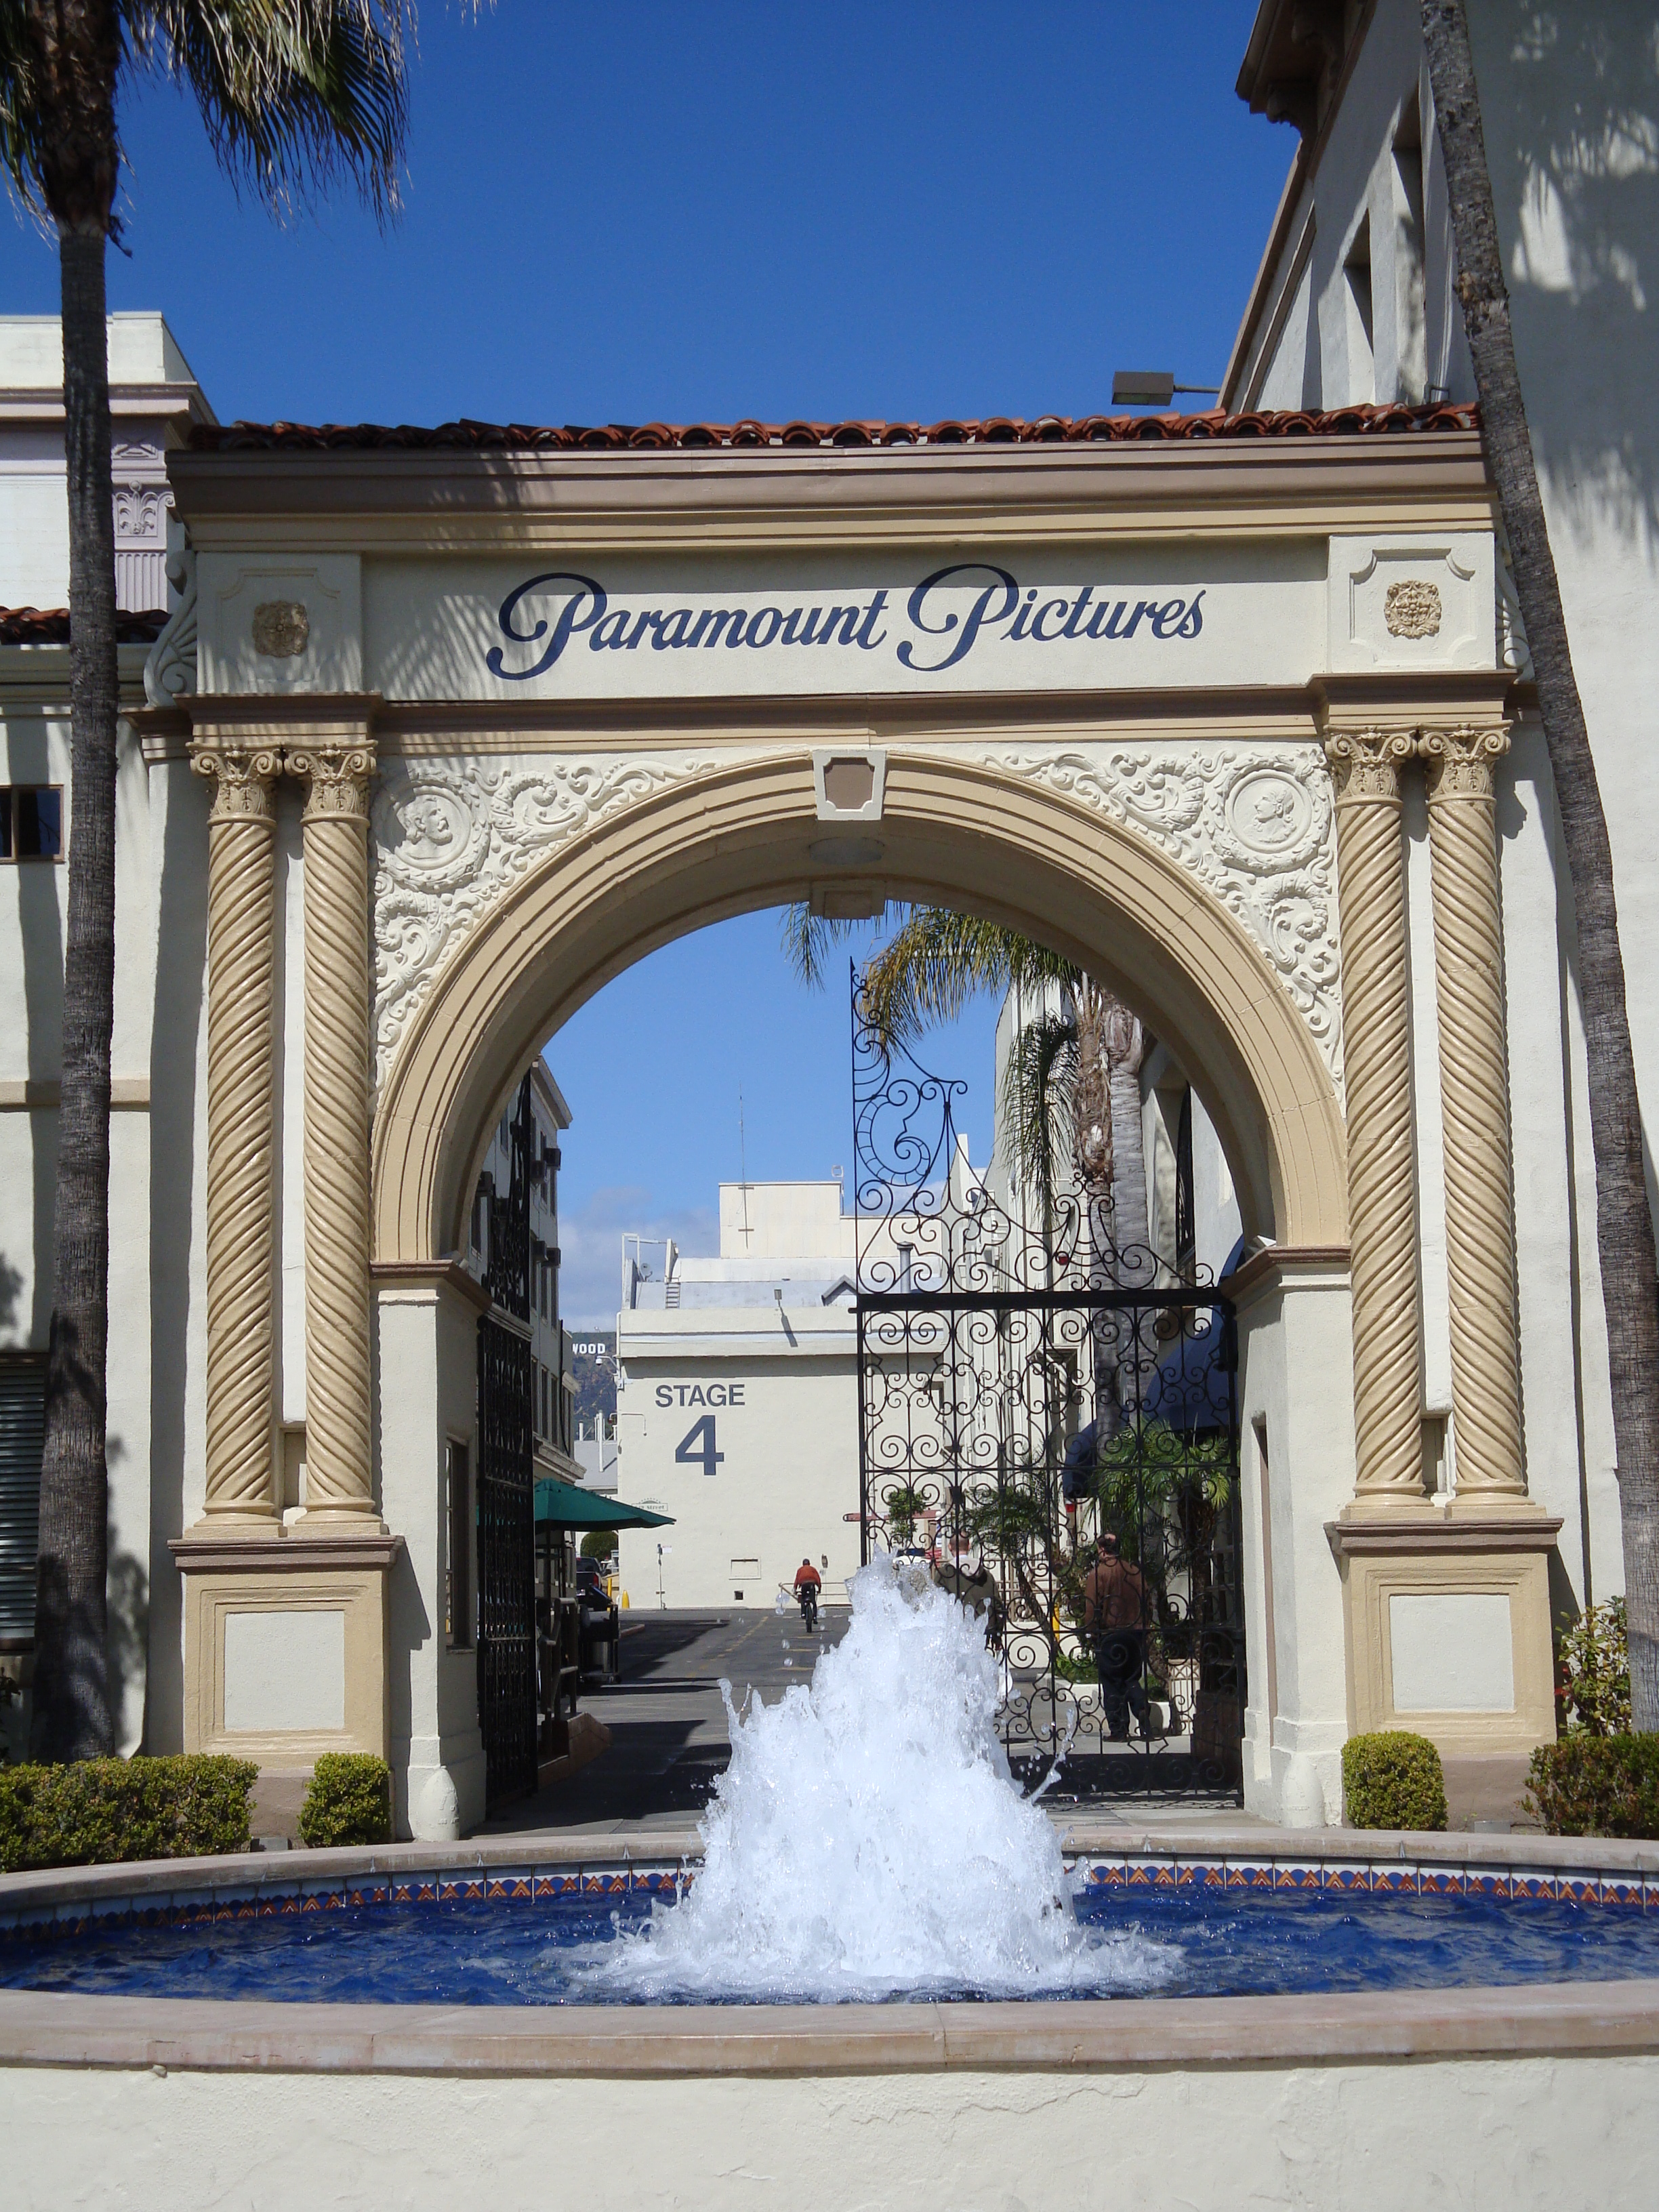 Los Angeles Movie Studio Tours Ranked Geektyrant